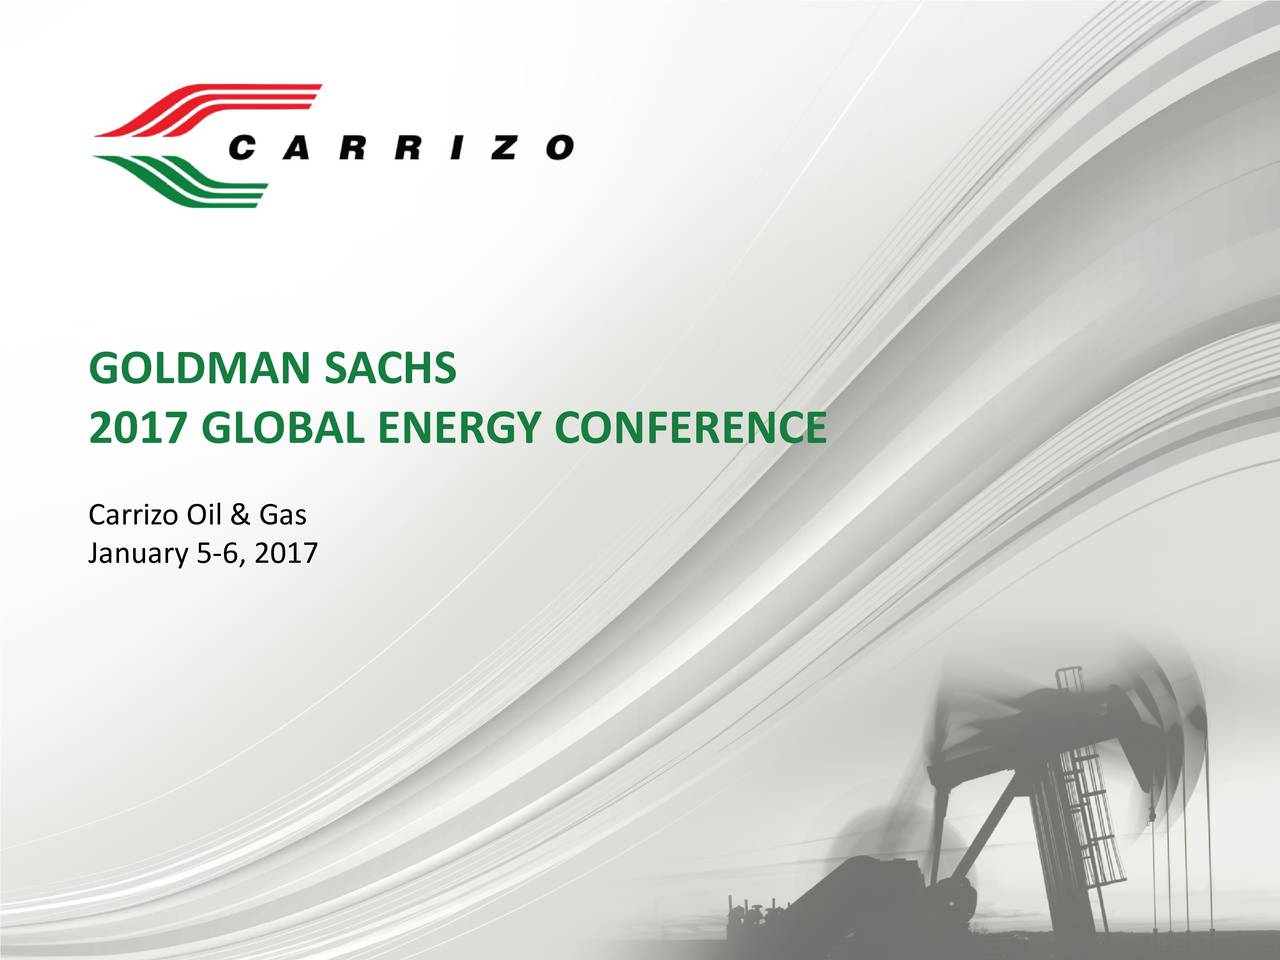 2017 GLOBAL ENERGY CONFERENCE Carrizo Oil & Gas January 5-6, 2017